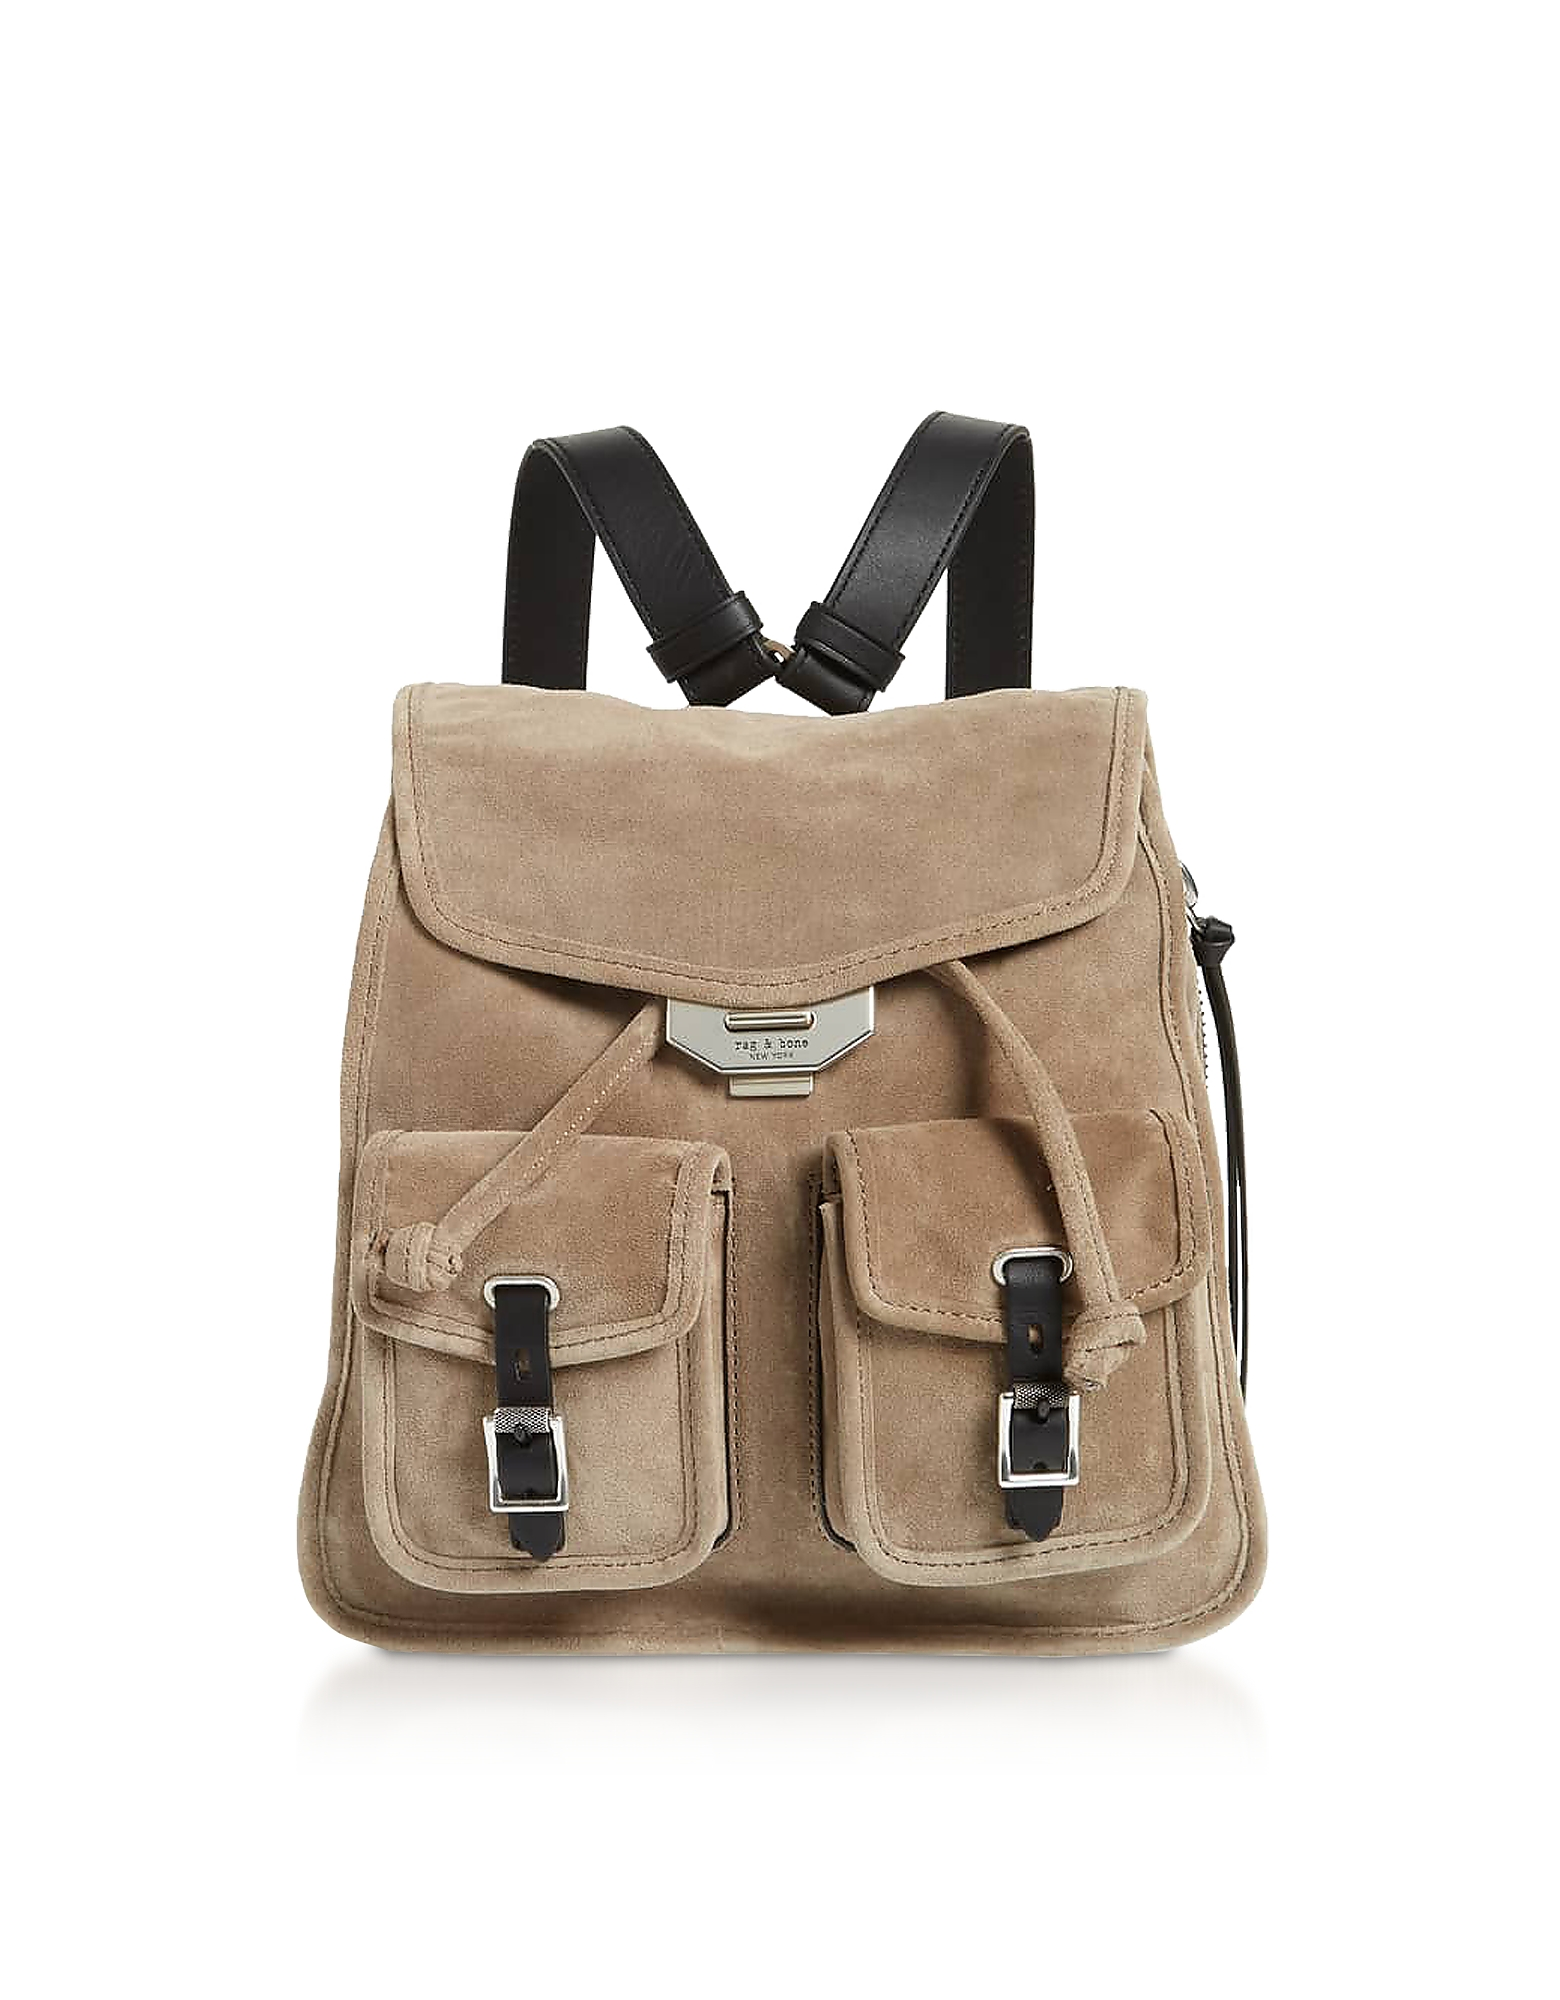 Rag & Bone Designer Handbags, Warm Grey Suede Field Small Backpack